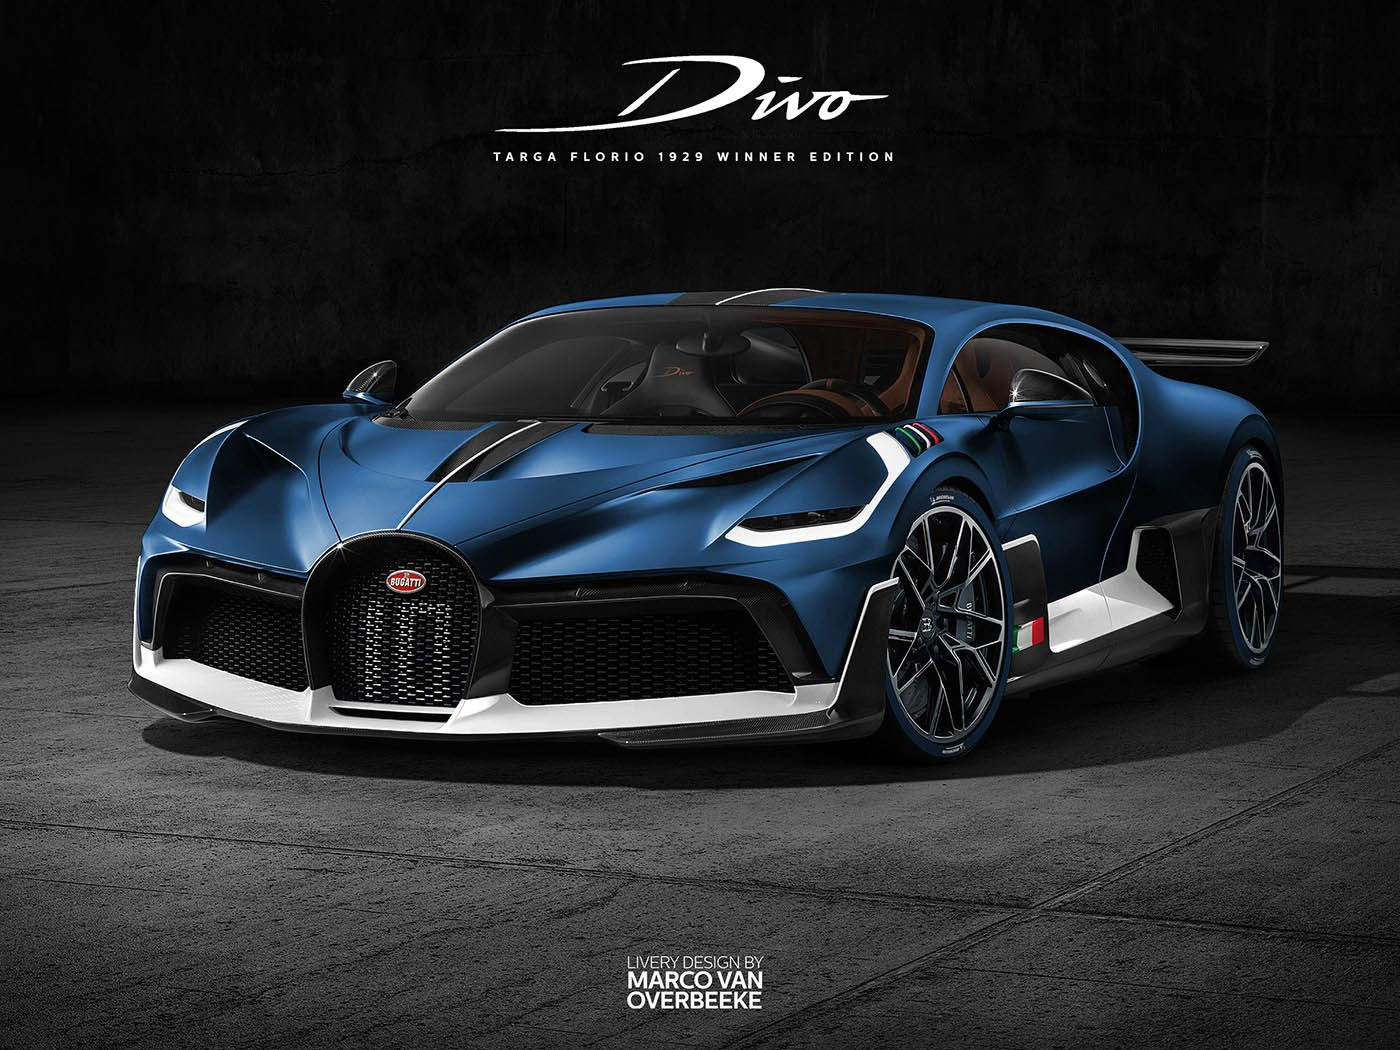 Bugatti Divo Would Look Spectacular In Just About Any Of These Liveries Carscoops In 2020 Bugatti Super Cars Super Luxury Cars